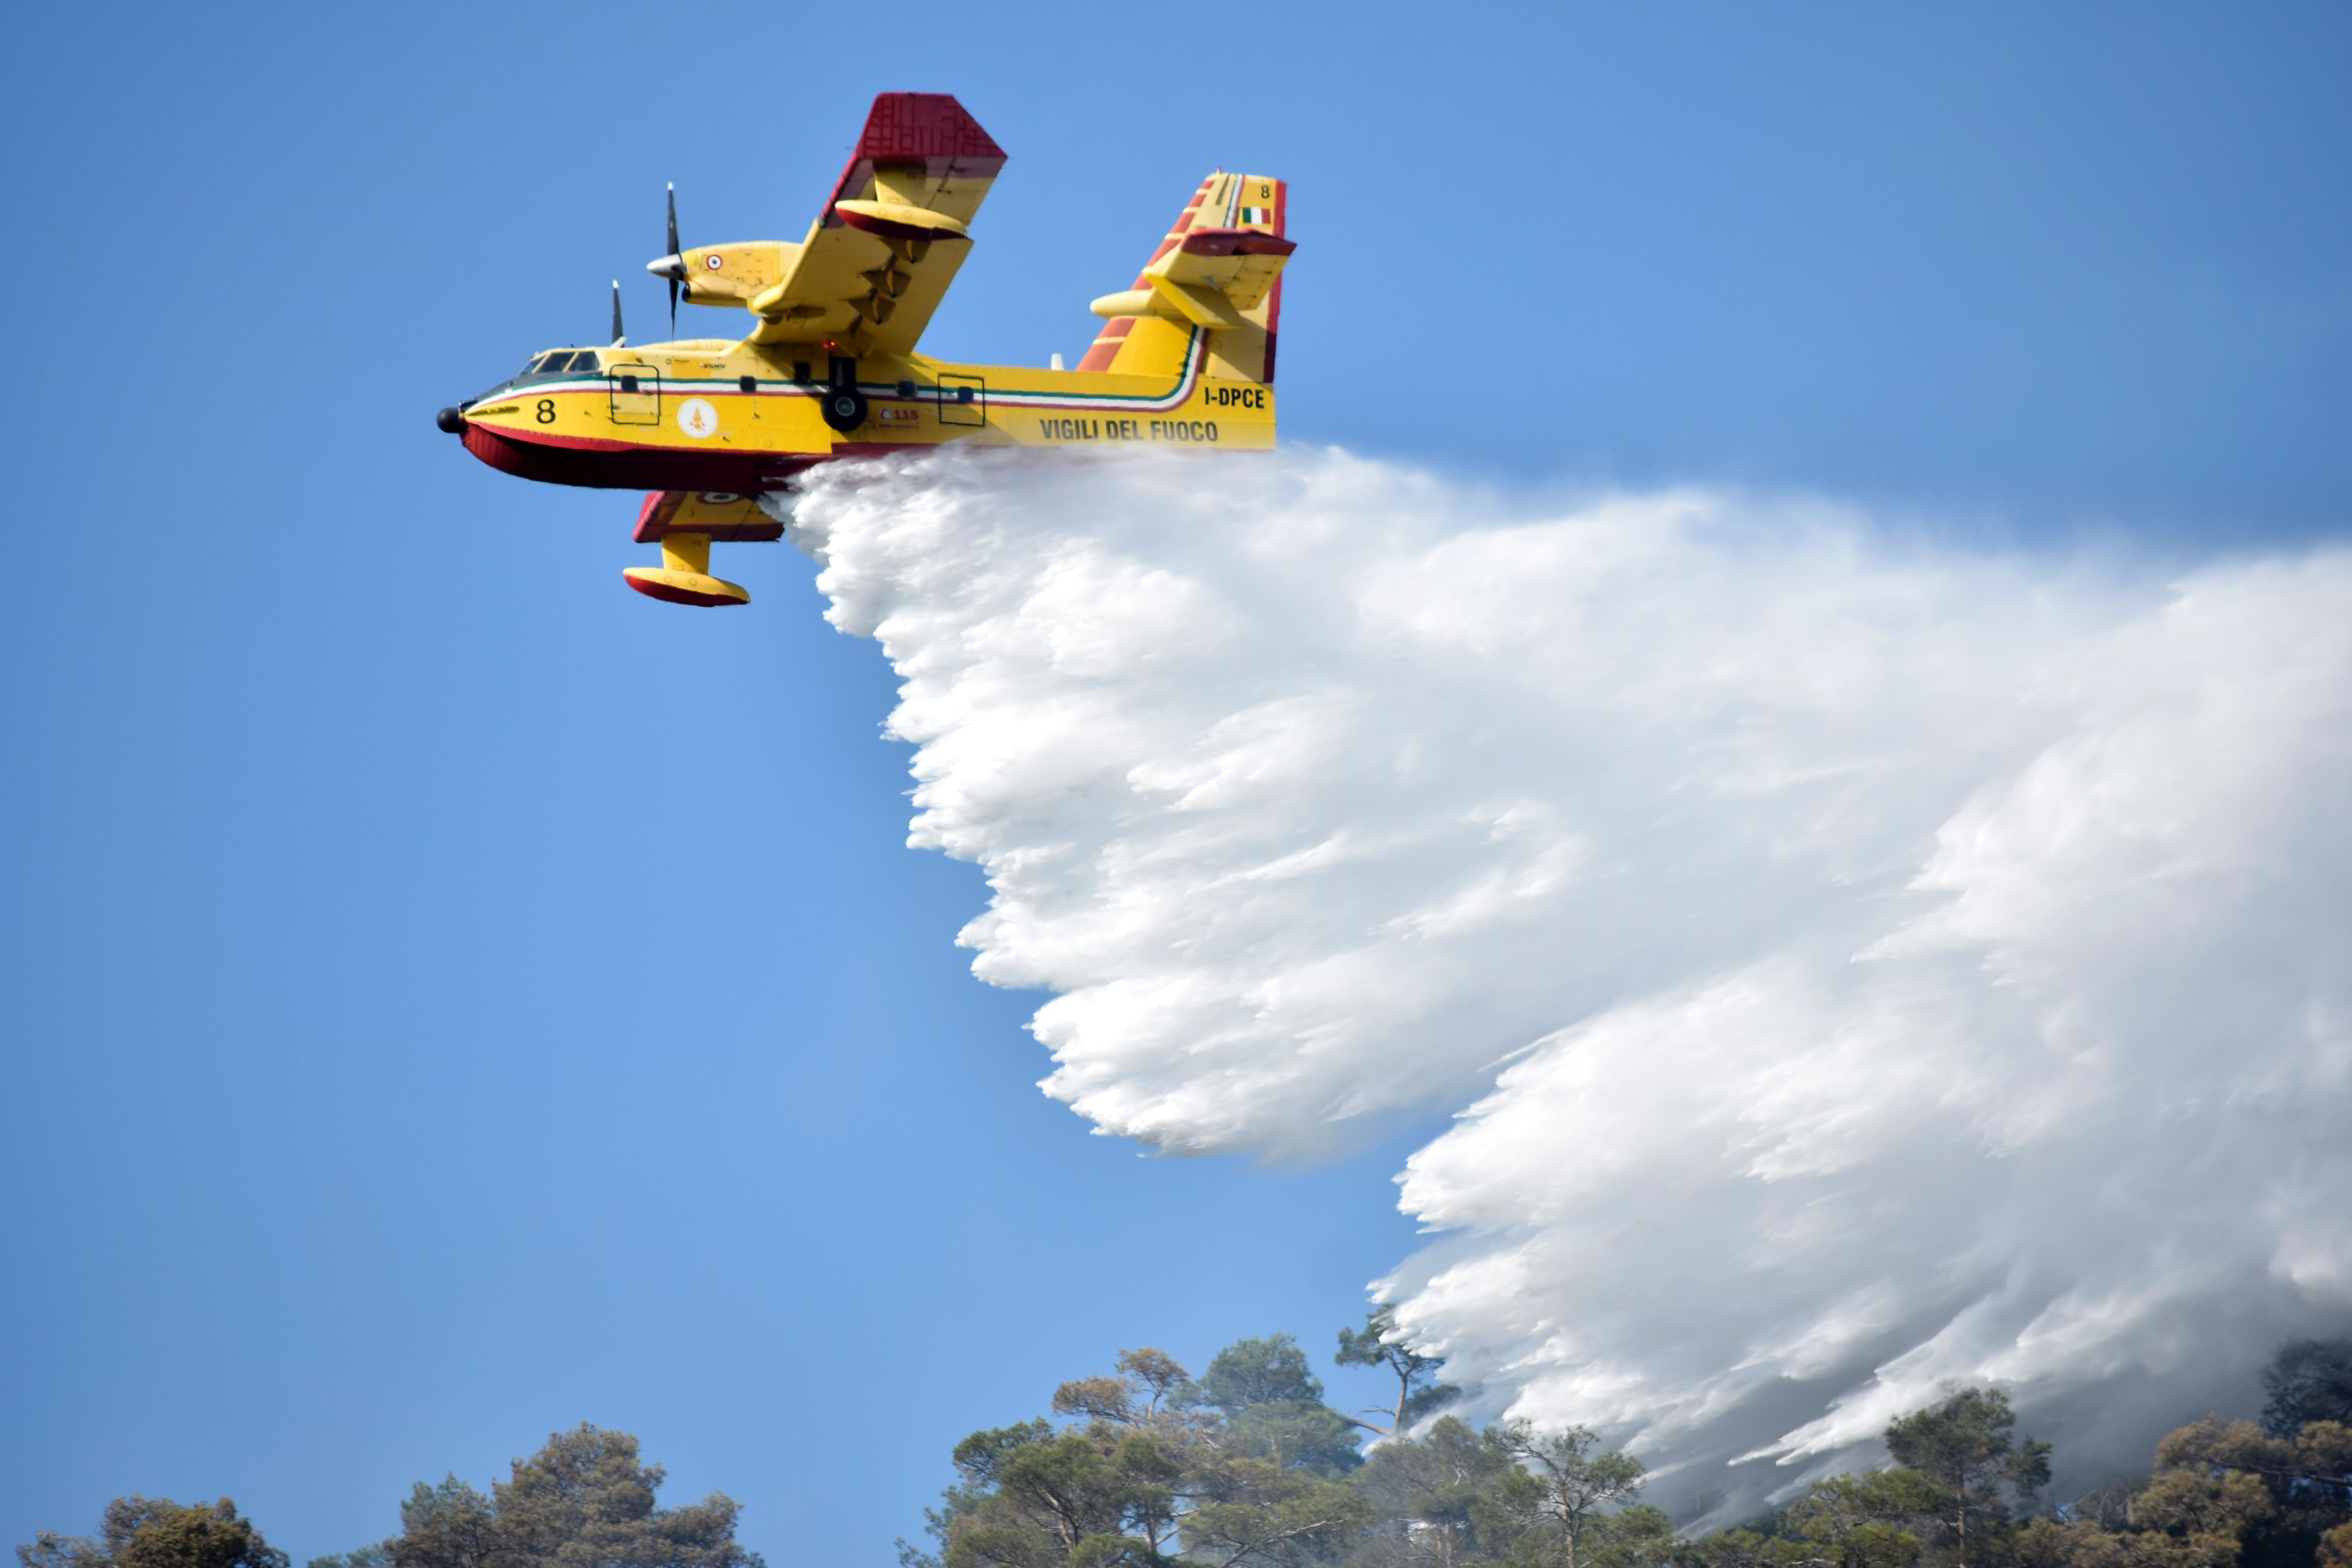 A firefighting plane, coming from Italy to assist local teams, drops water above the Cypriot village of Evrychou in the Troodos mountain area on June 22, 2016 during a forest fire. (GEORGIO PAPAPETROU/AFP/Getty Images)